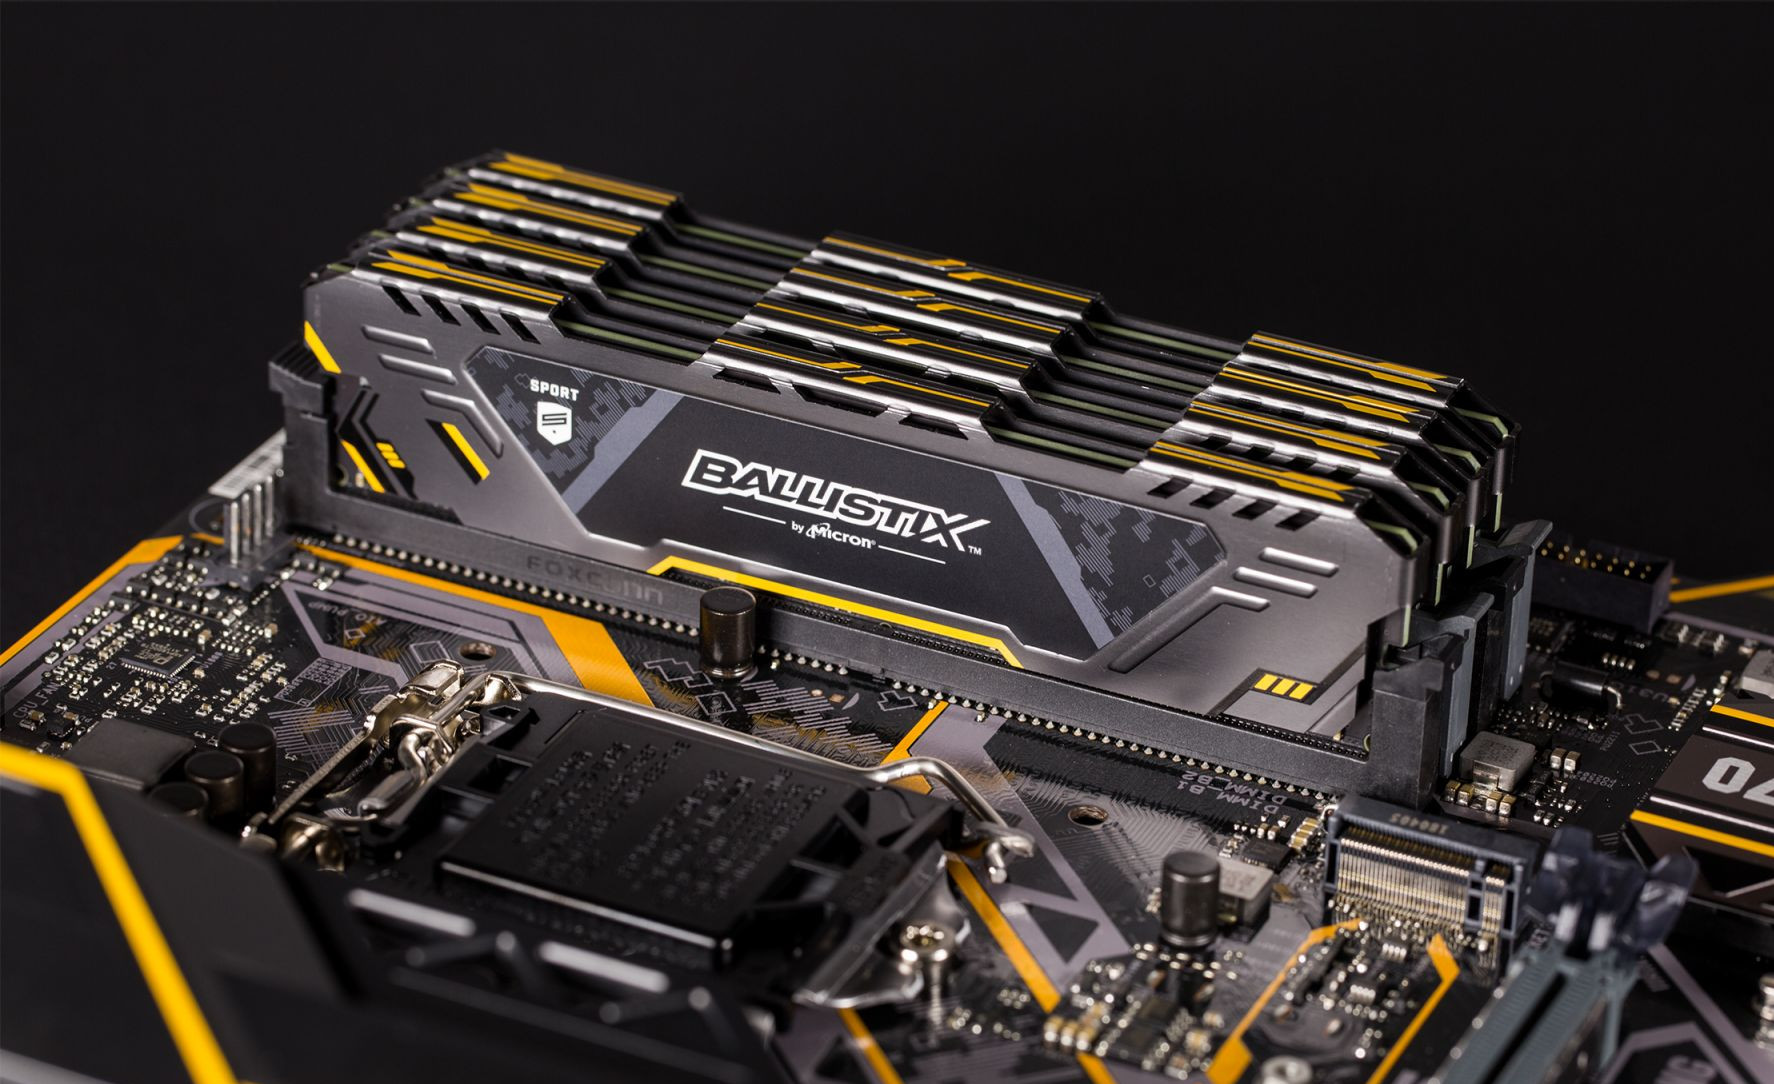 Crucial Memory Releases Ballistix Sport AT Gaming Memory 2667-3000MHz Speeds